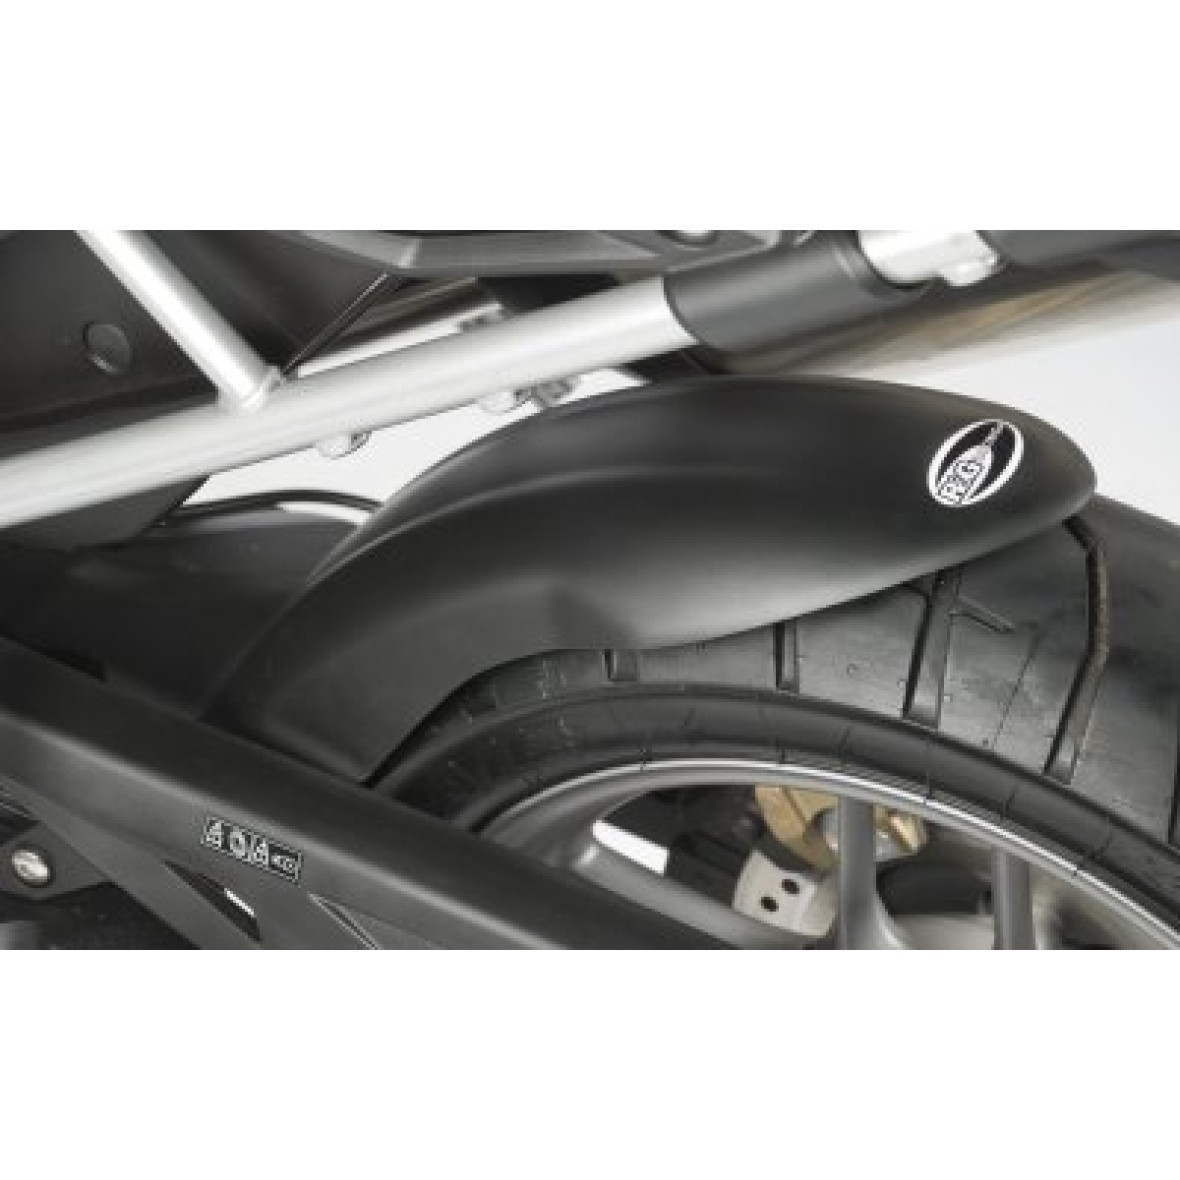 Rg Rear Hugger For Triumph Tiger 800 11